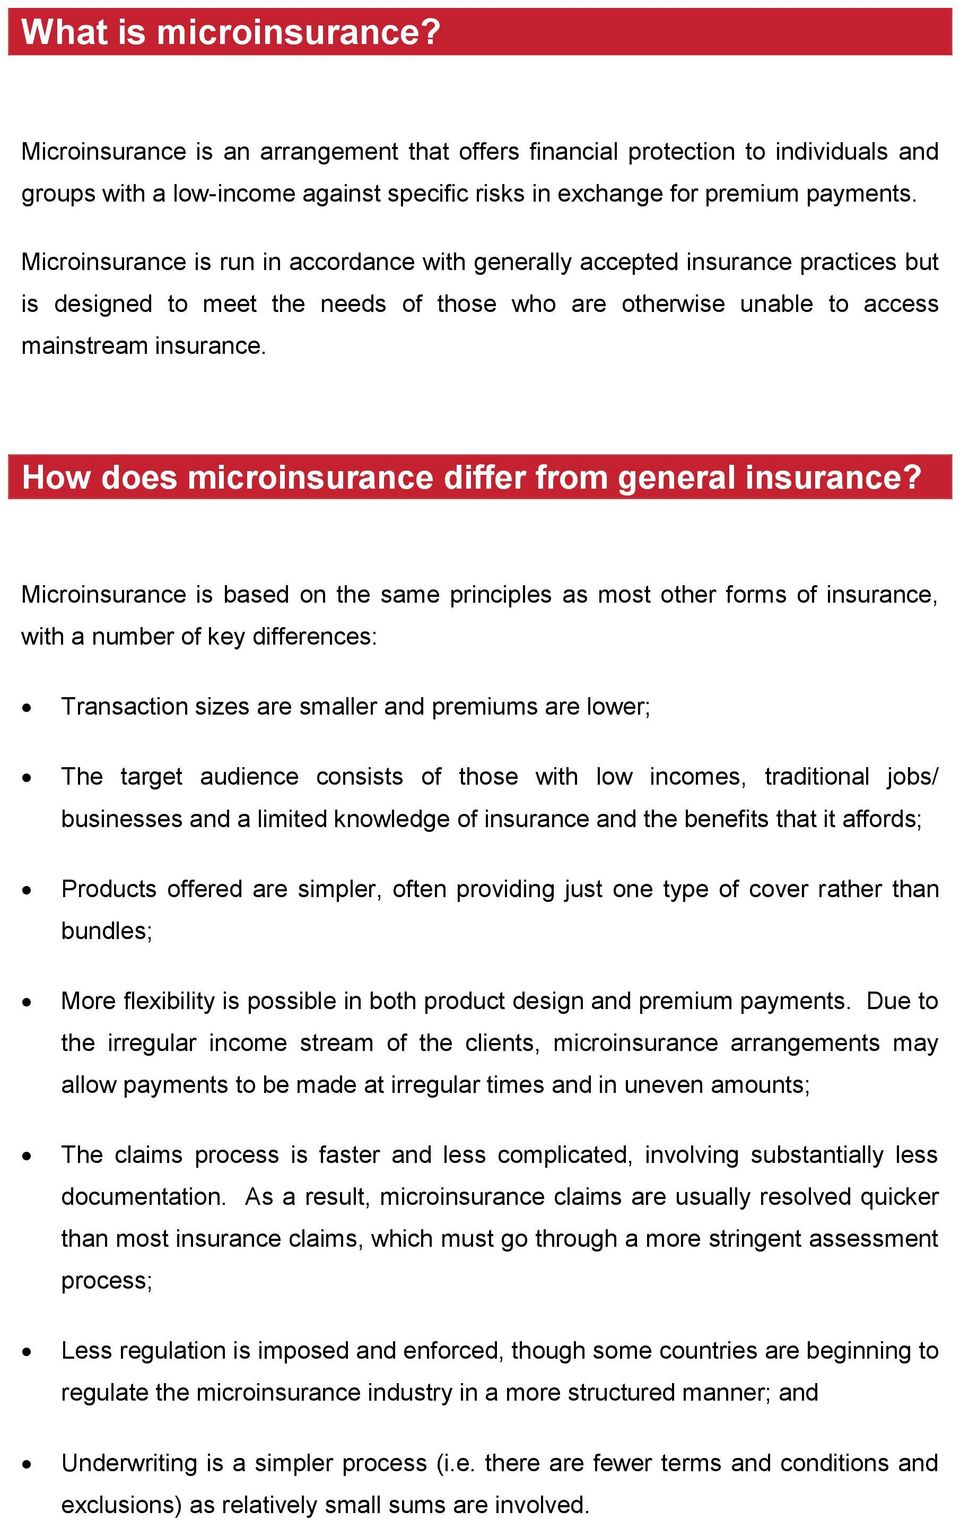 How does microinsurance differ from general insurance?